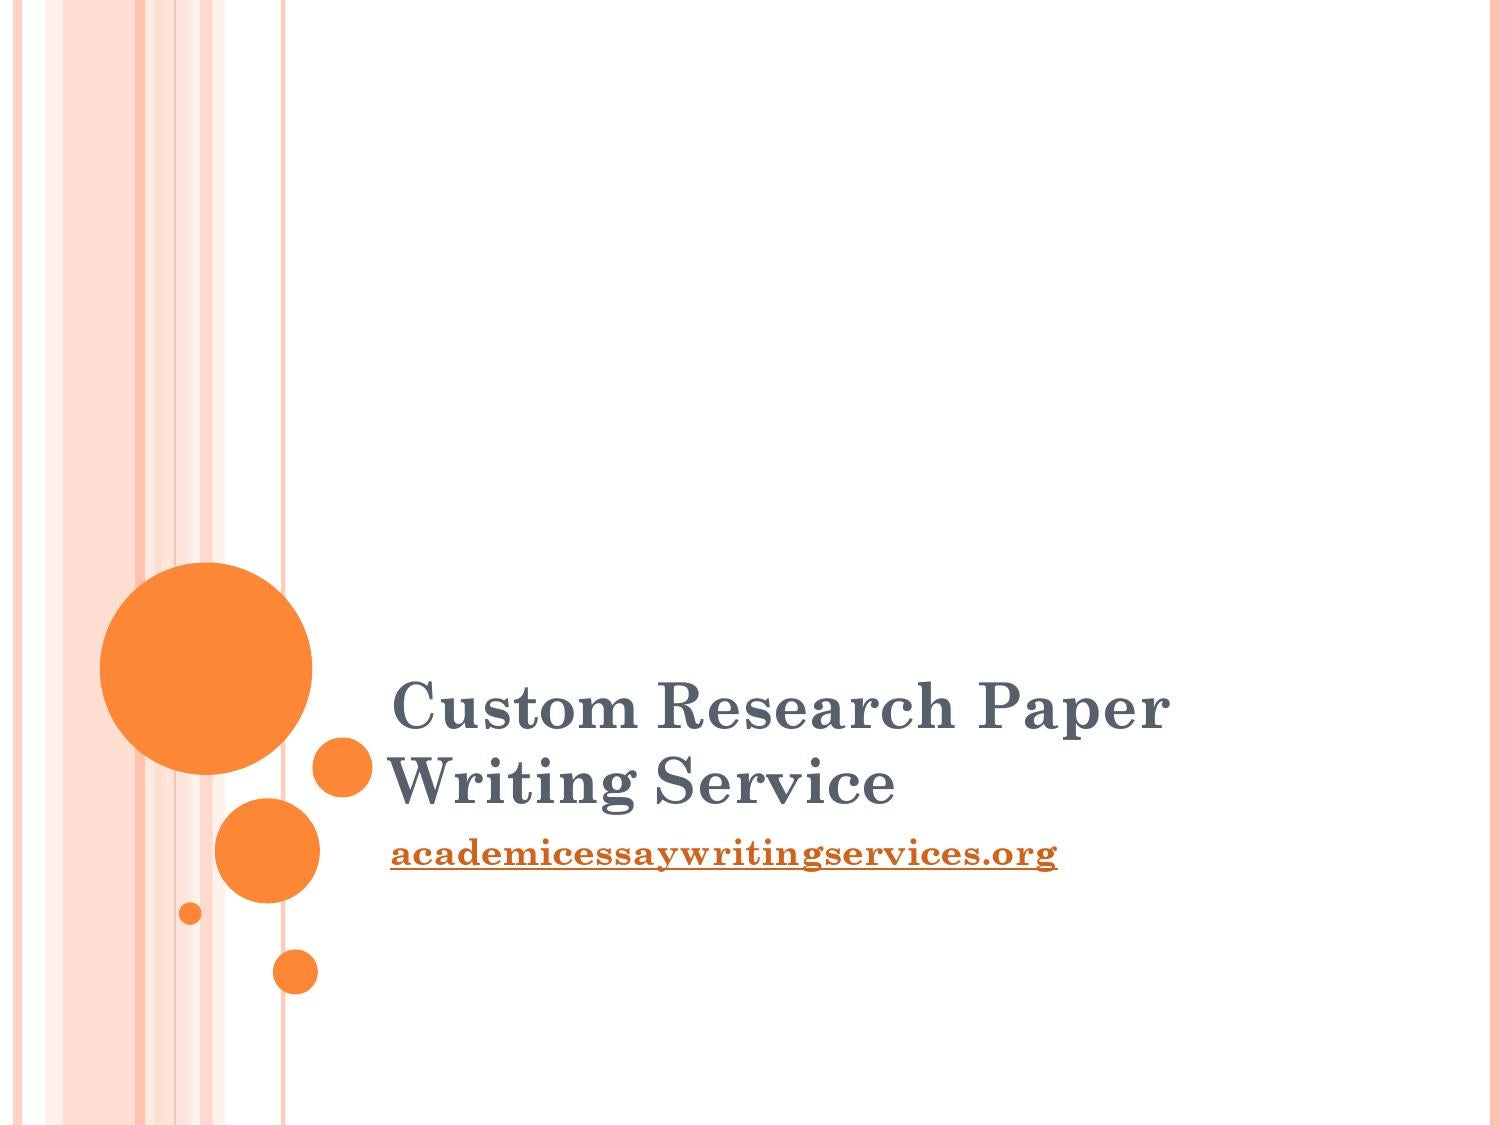 Best Custom Research Paper Writing Service | blogger.com